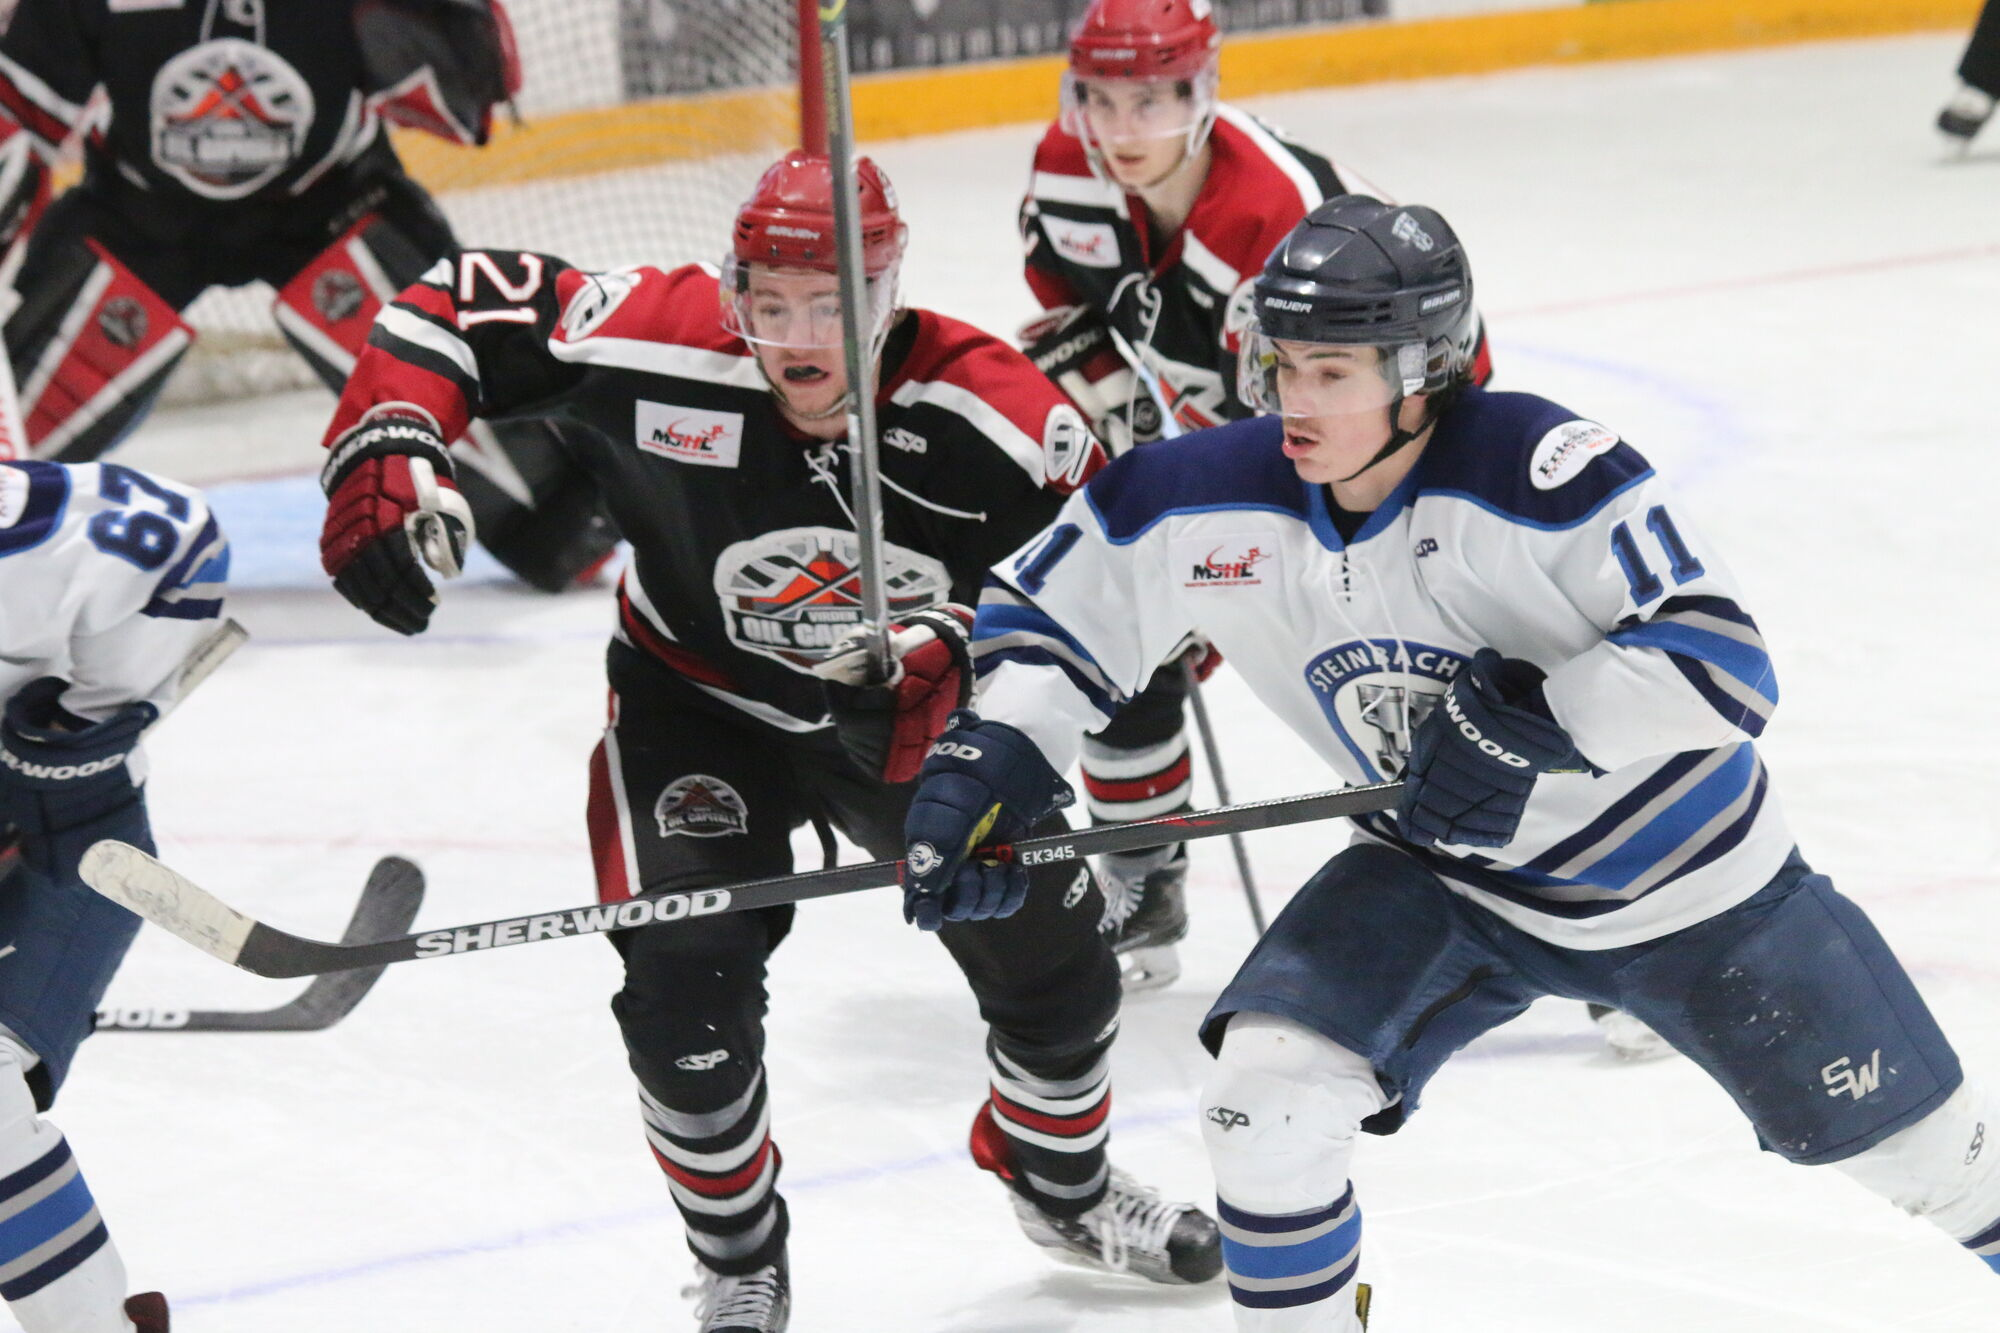 Austin Heidemann (#11) had a goal and an assist as the Steinbach Pistons blanked the Virden Oil Capitals 4-0 Monday night in Virden to knot the MJHL final series at two games apiece. Game five goes Thursday night in Steinbach.